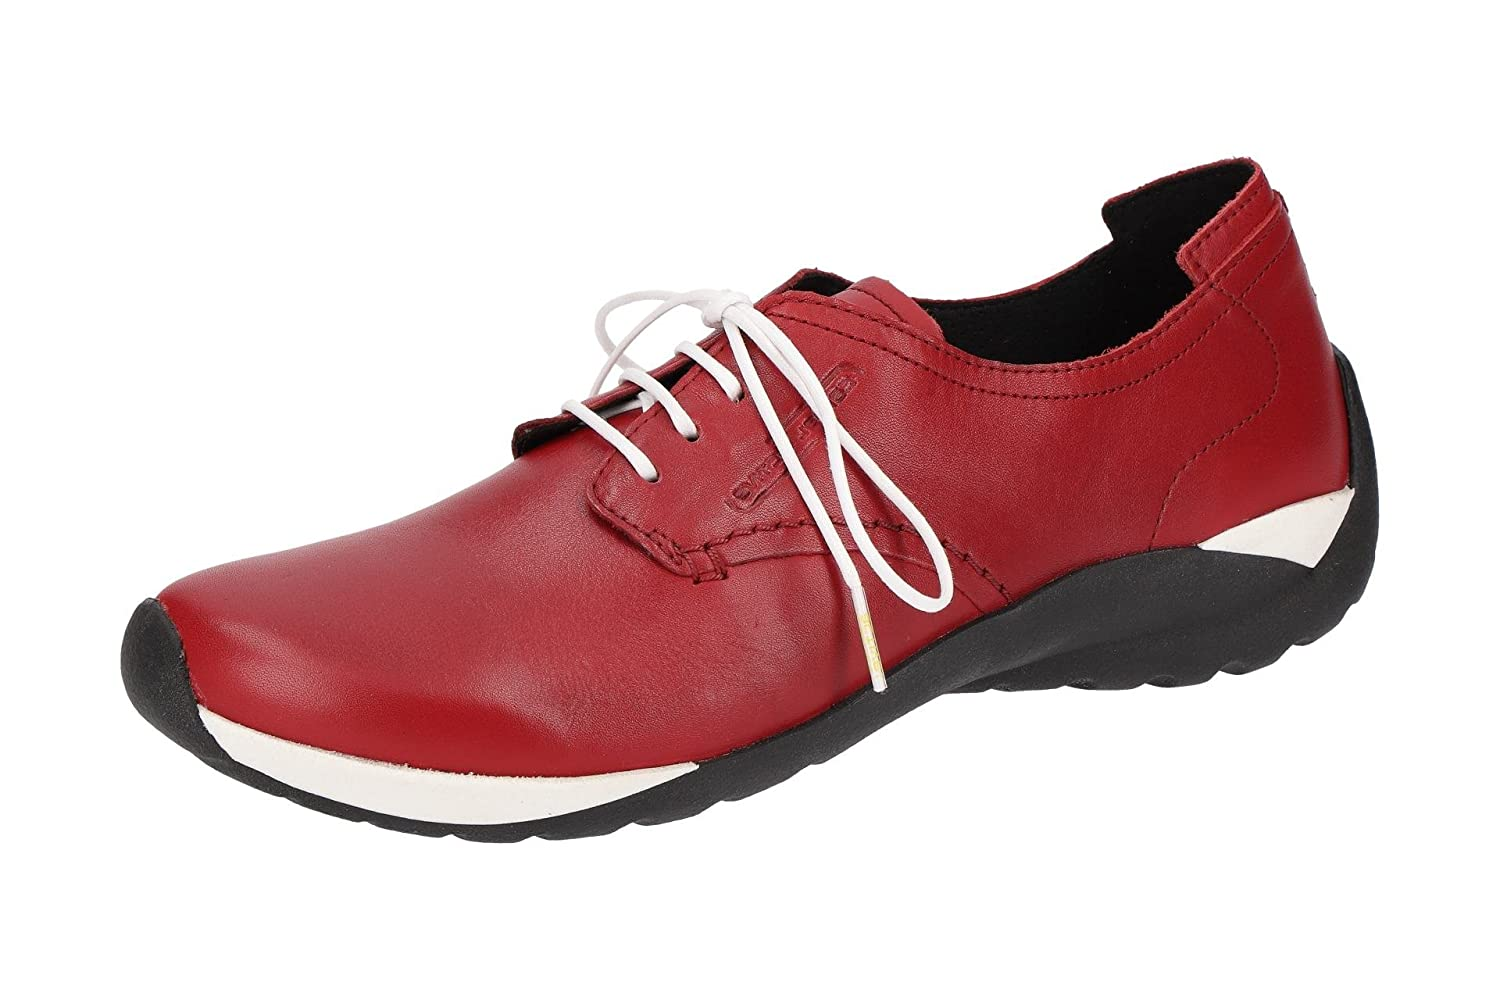 camel active Mujeres Zapatos Planos Red Rojo, (Red) 844.72.07 38 EU|Red